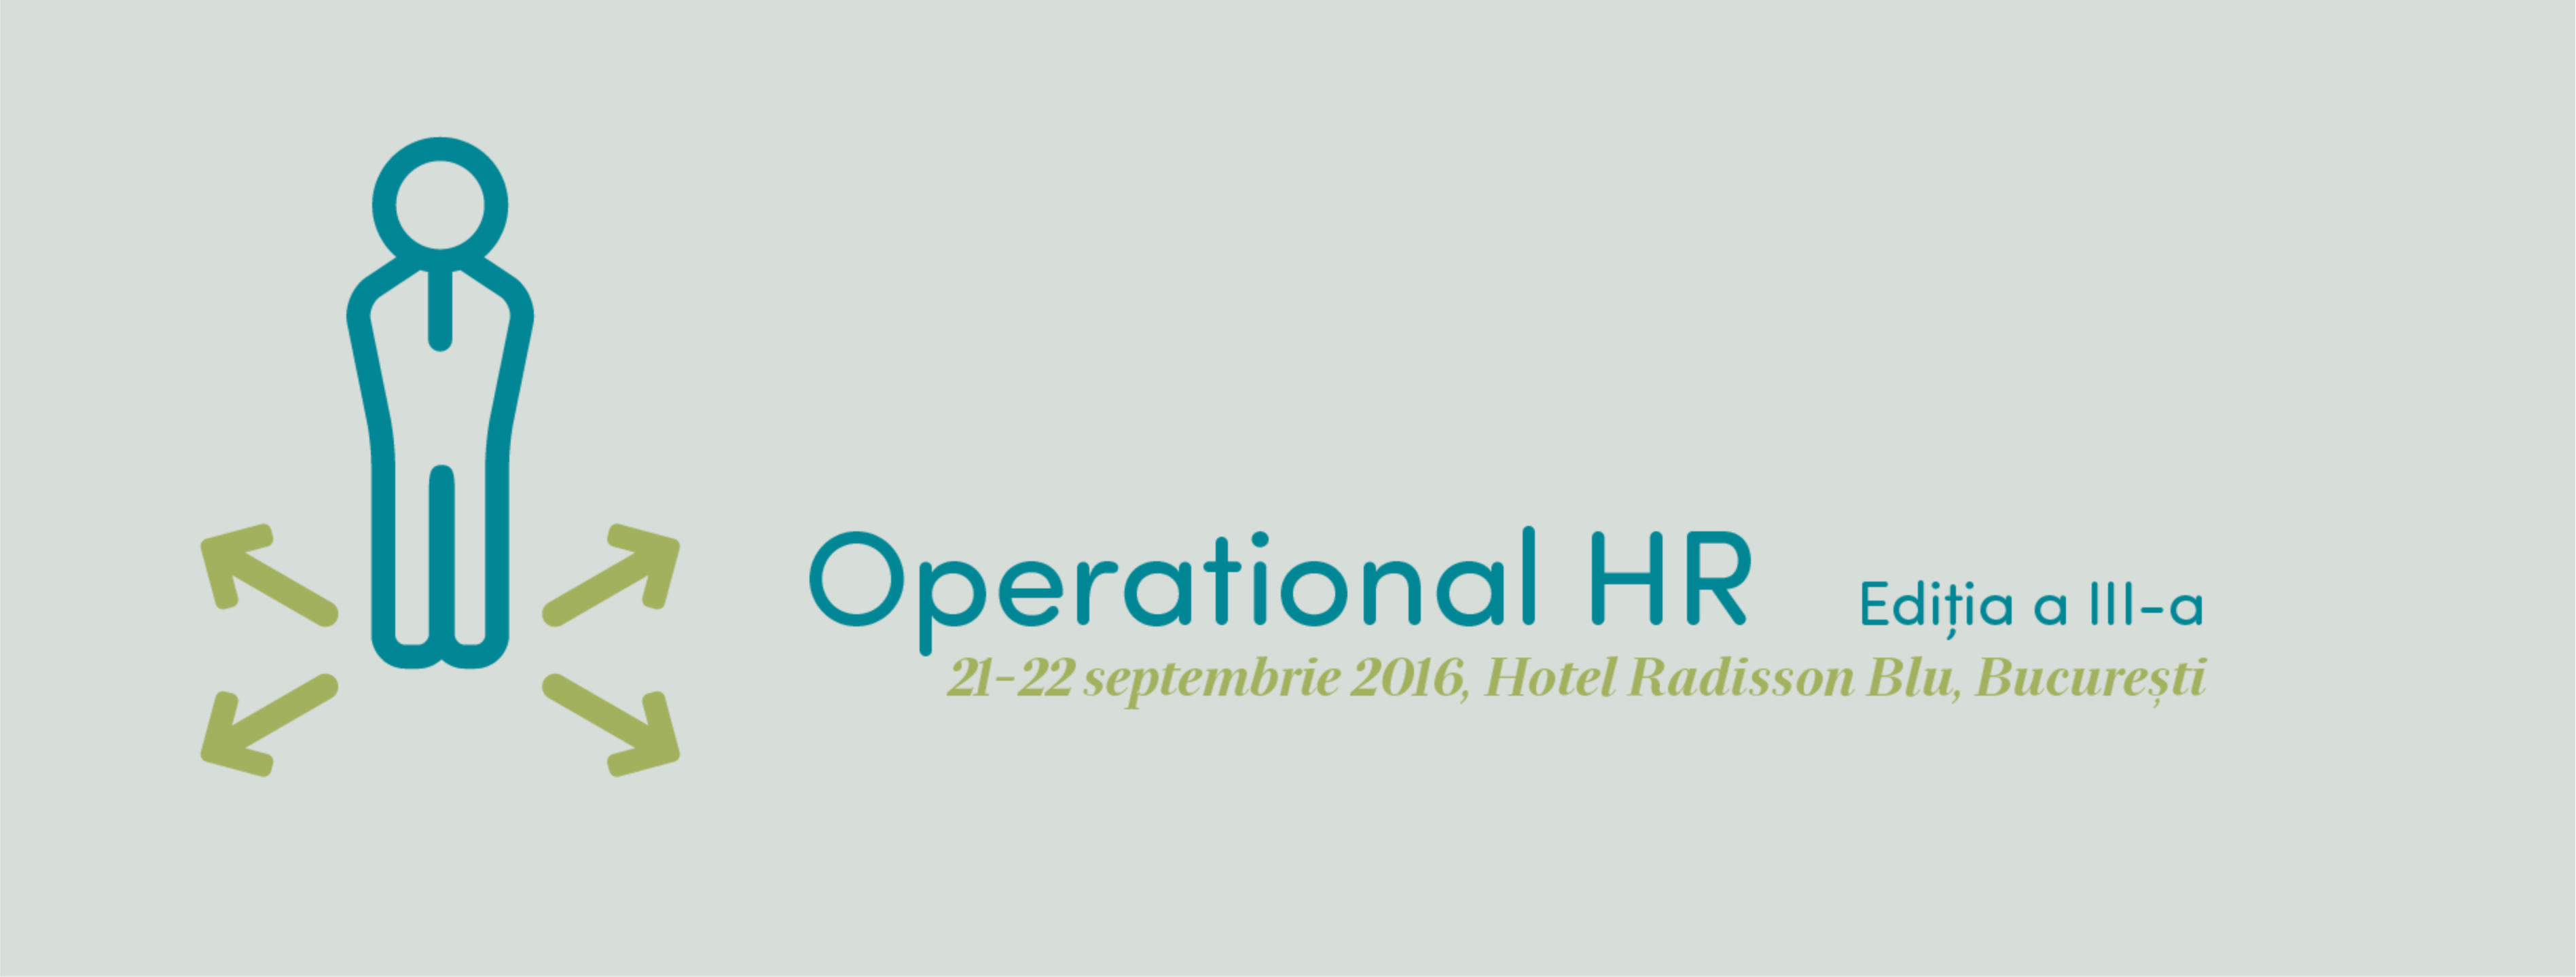 Operational HR, ediția a III-a, București